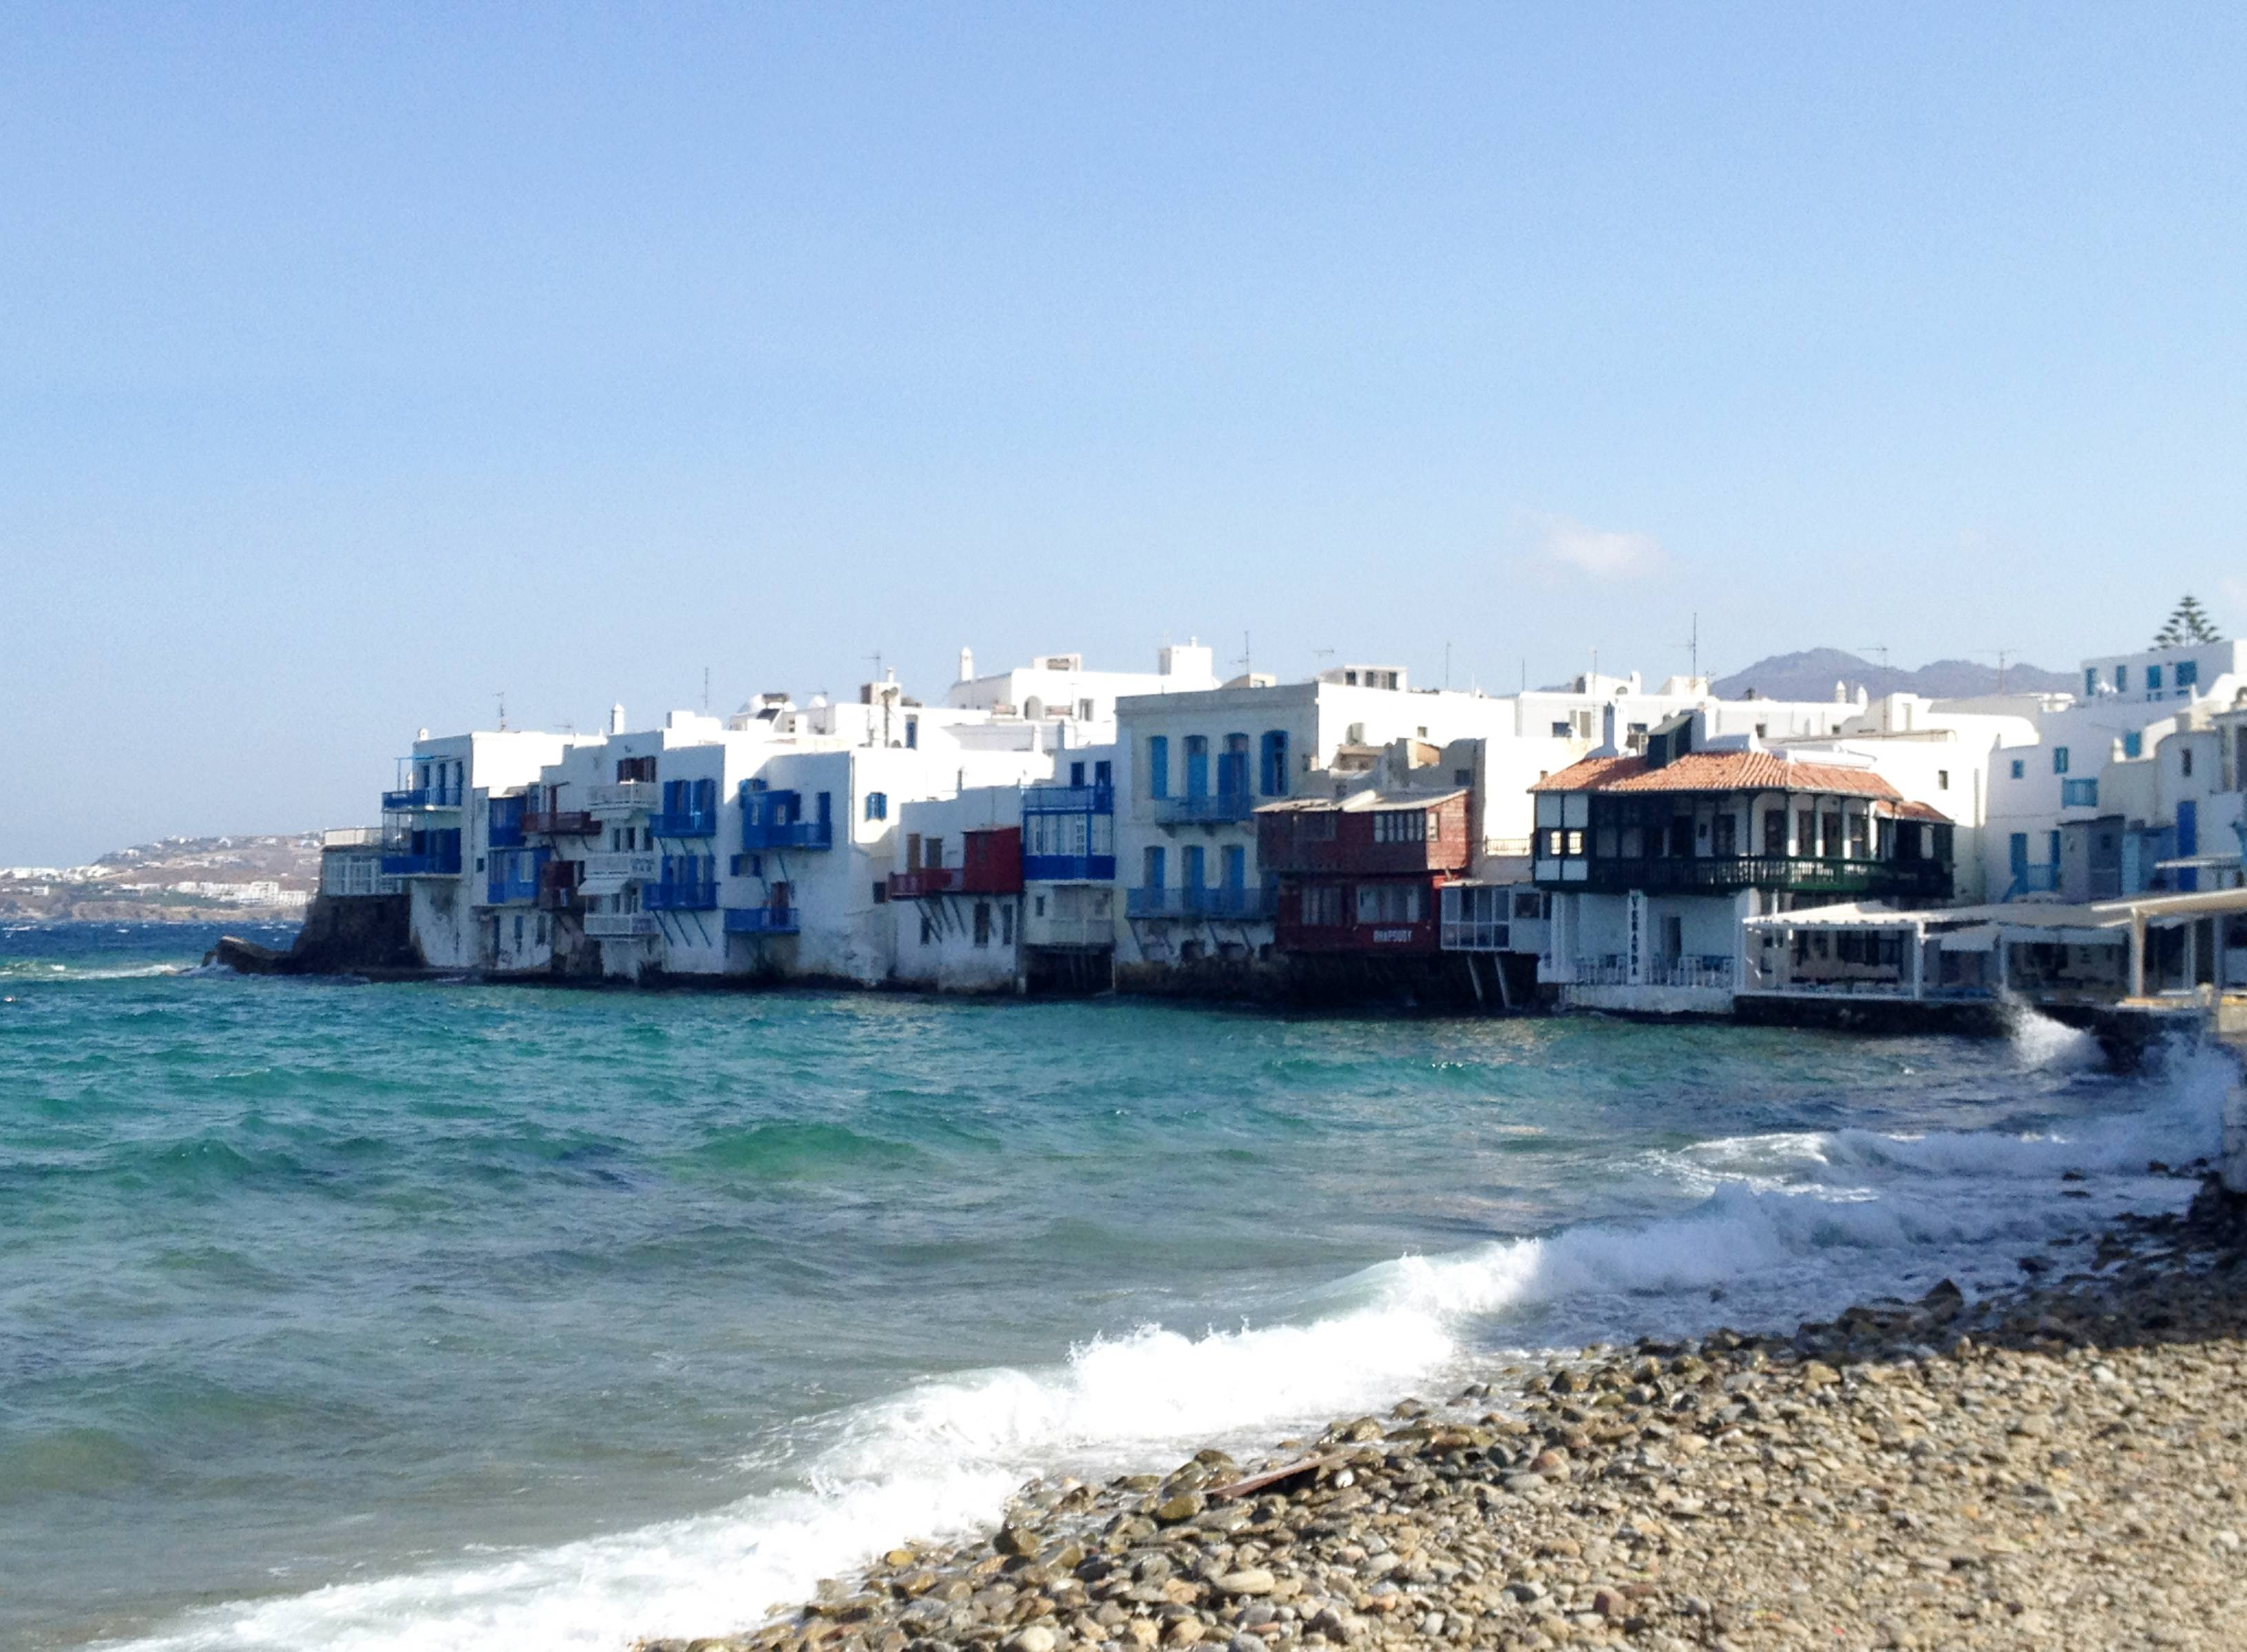 Visitors enjoy black-sand beaches and a view of the homes tucked into the waterfront of the island of Mykonos, in an area known as Little Venice. Mykonos is located in the Cyclades, a Greek island chain in the Aegean Sea.